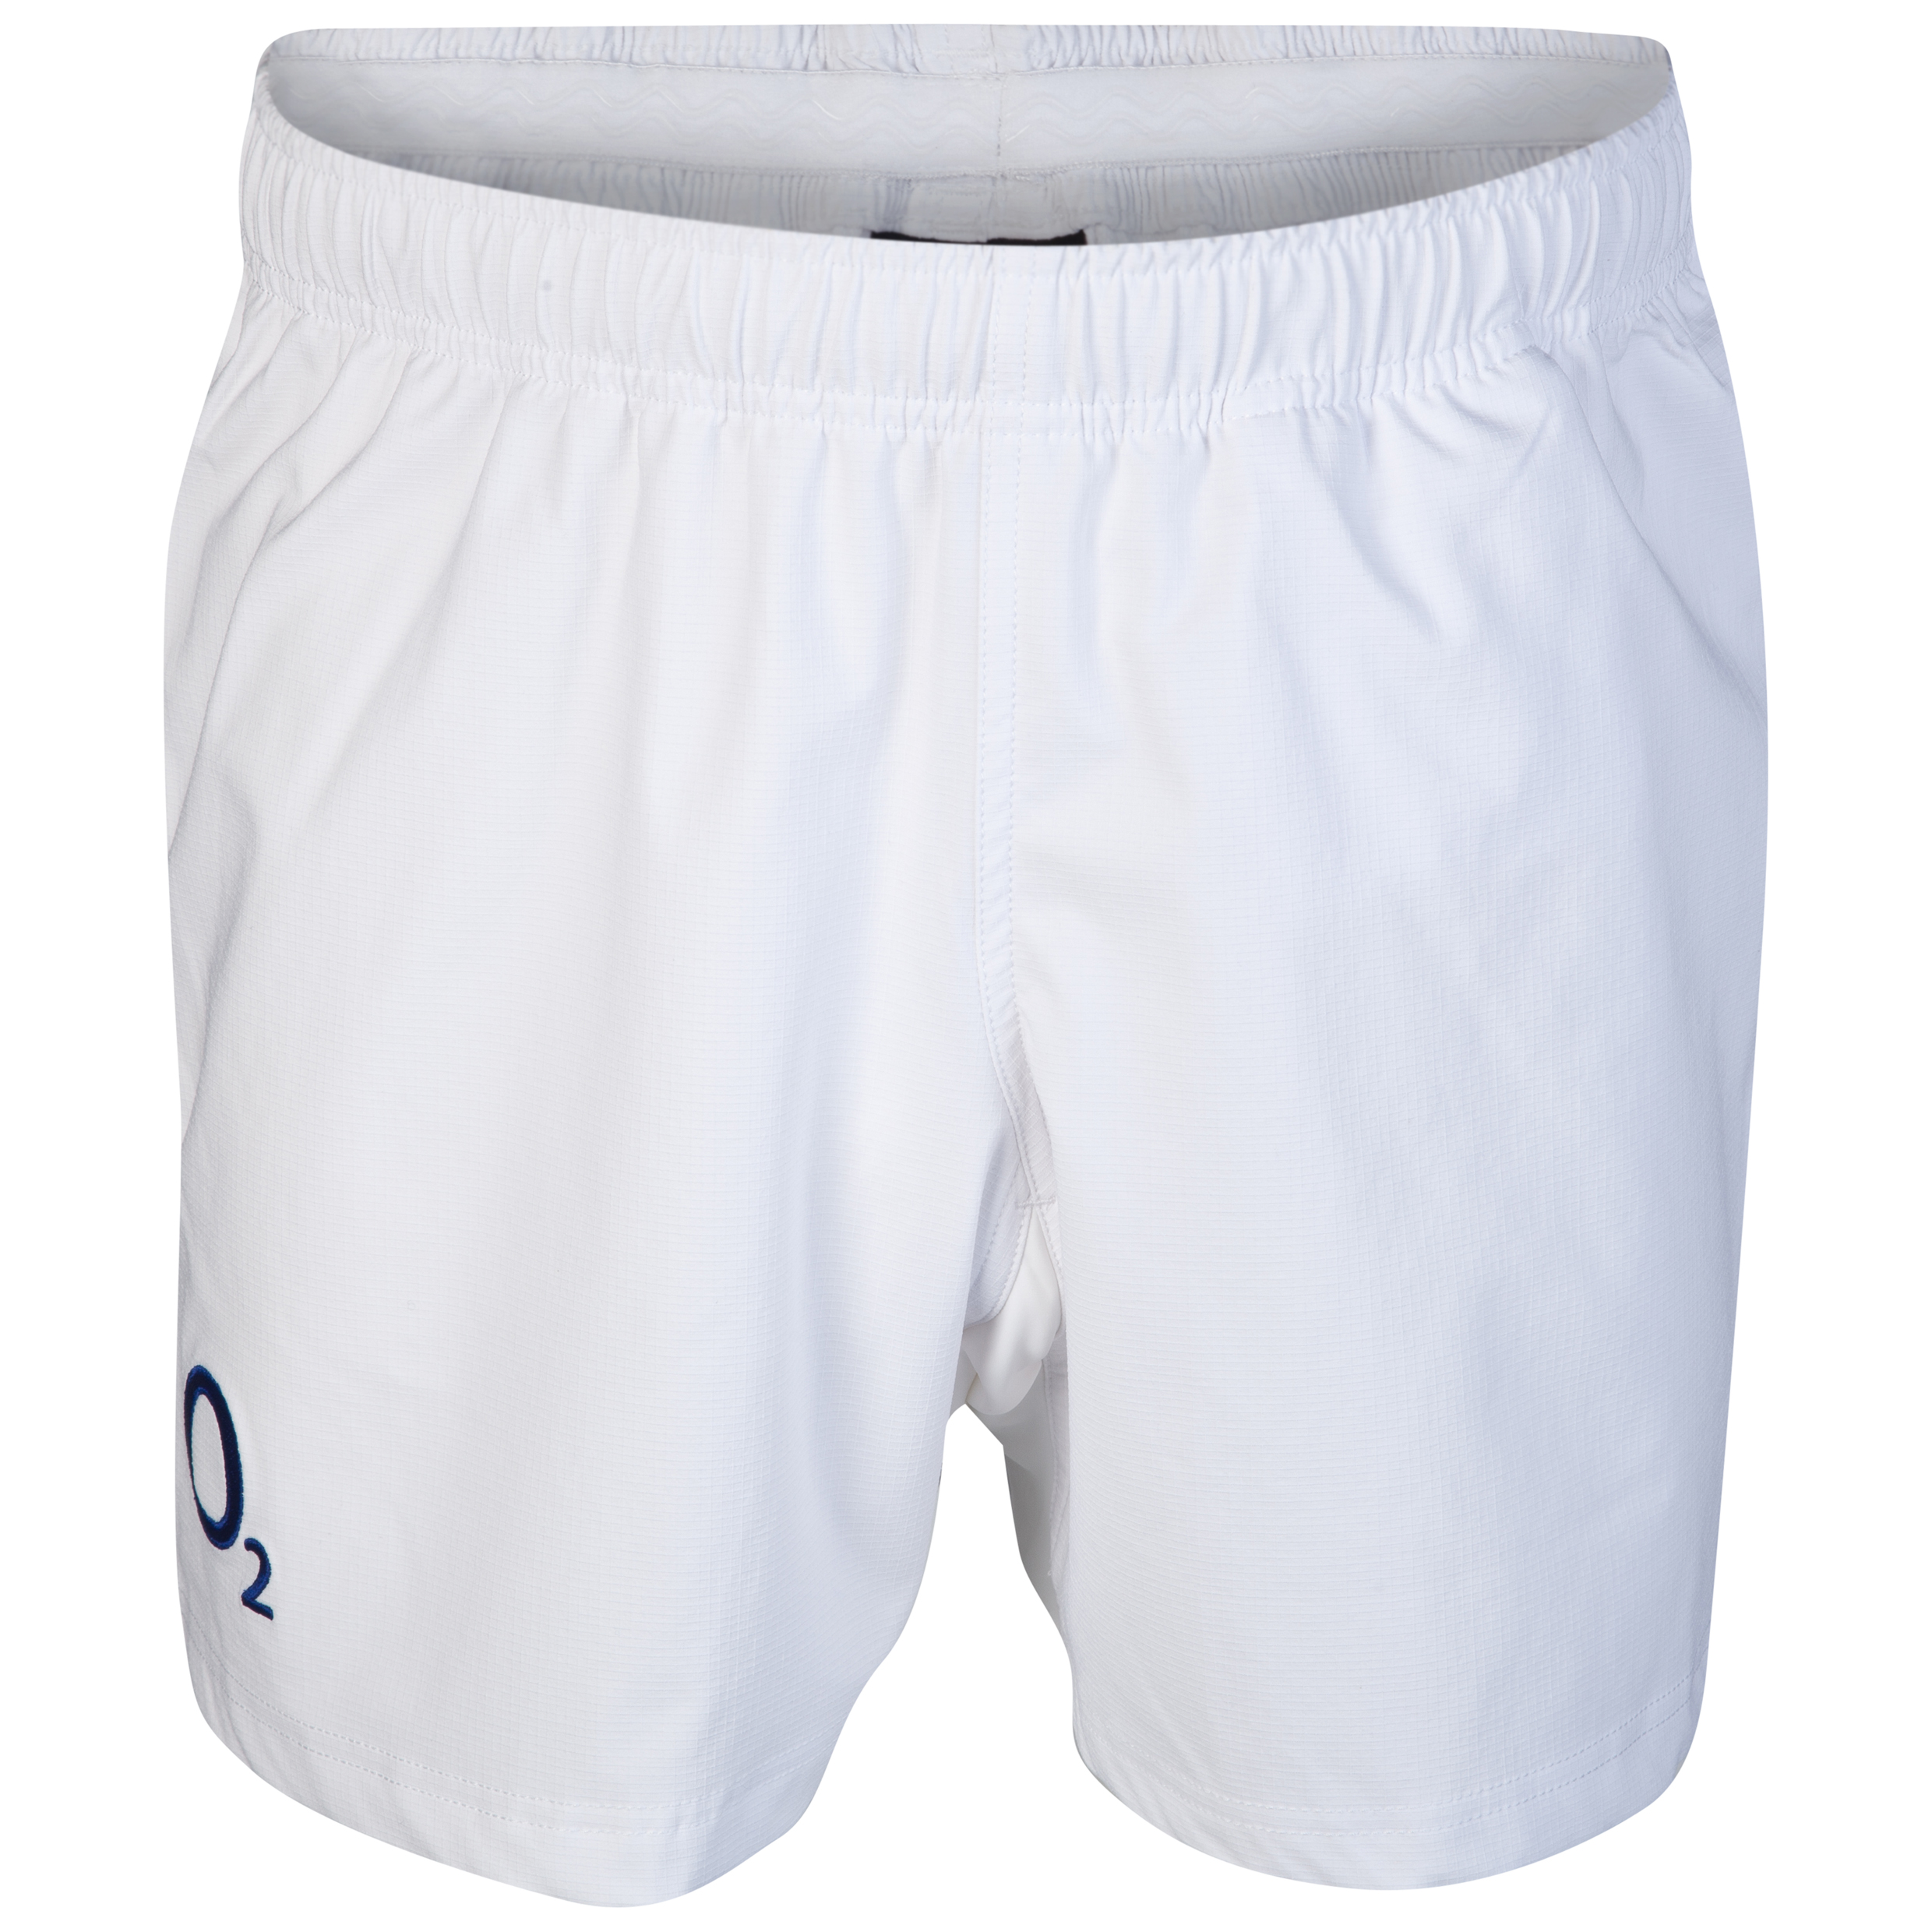 England Home Shorts 2012/13